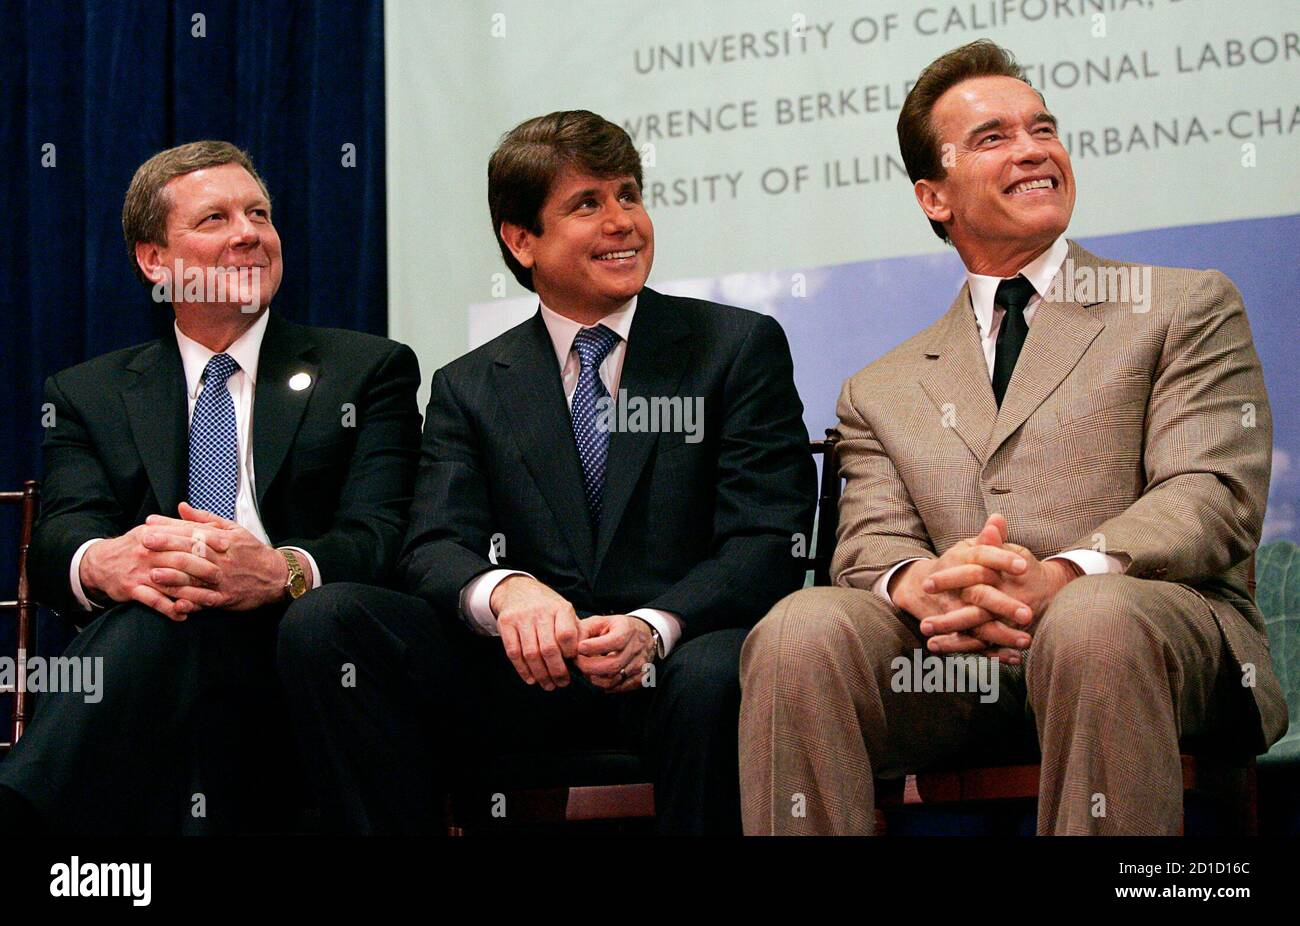 California Governor Arnold Schwarzenegger (R), Illinois Governor Rod Blagojevich (C), and BP America Chairman Robert Malone, hold a press conference in Berkeley, California February 1, 2007. British oil major BP Plc on Thursday announced that universities in California and Illinois will join company scientists in a $500 million energy research program focused on cleaner, alternative fuels.  REUTERS/Kimberly White (UNITED STATES) Stock Photo